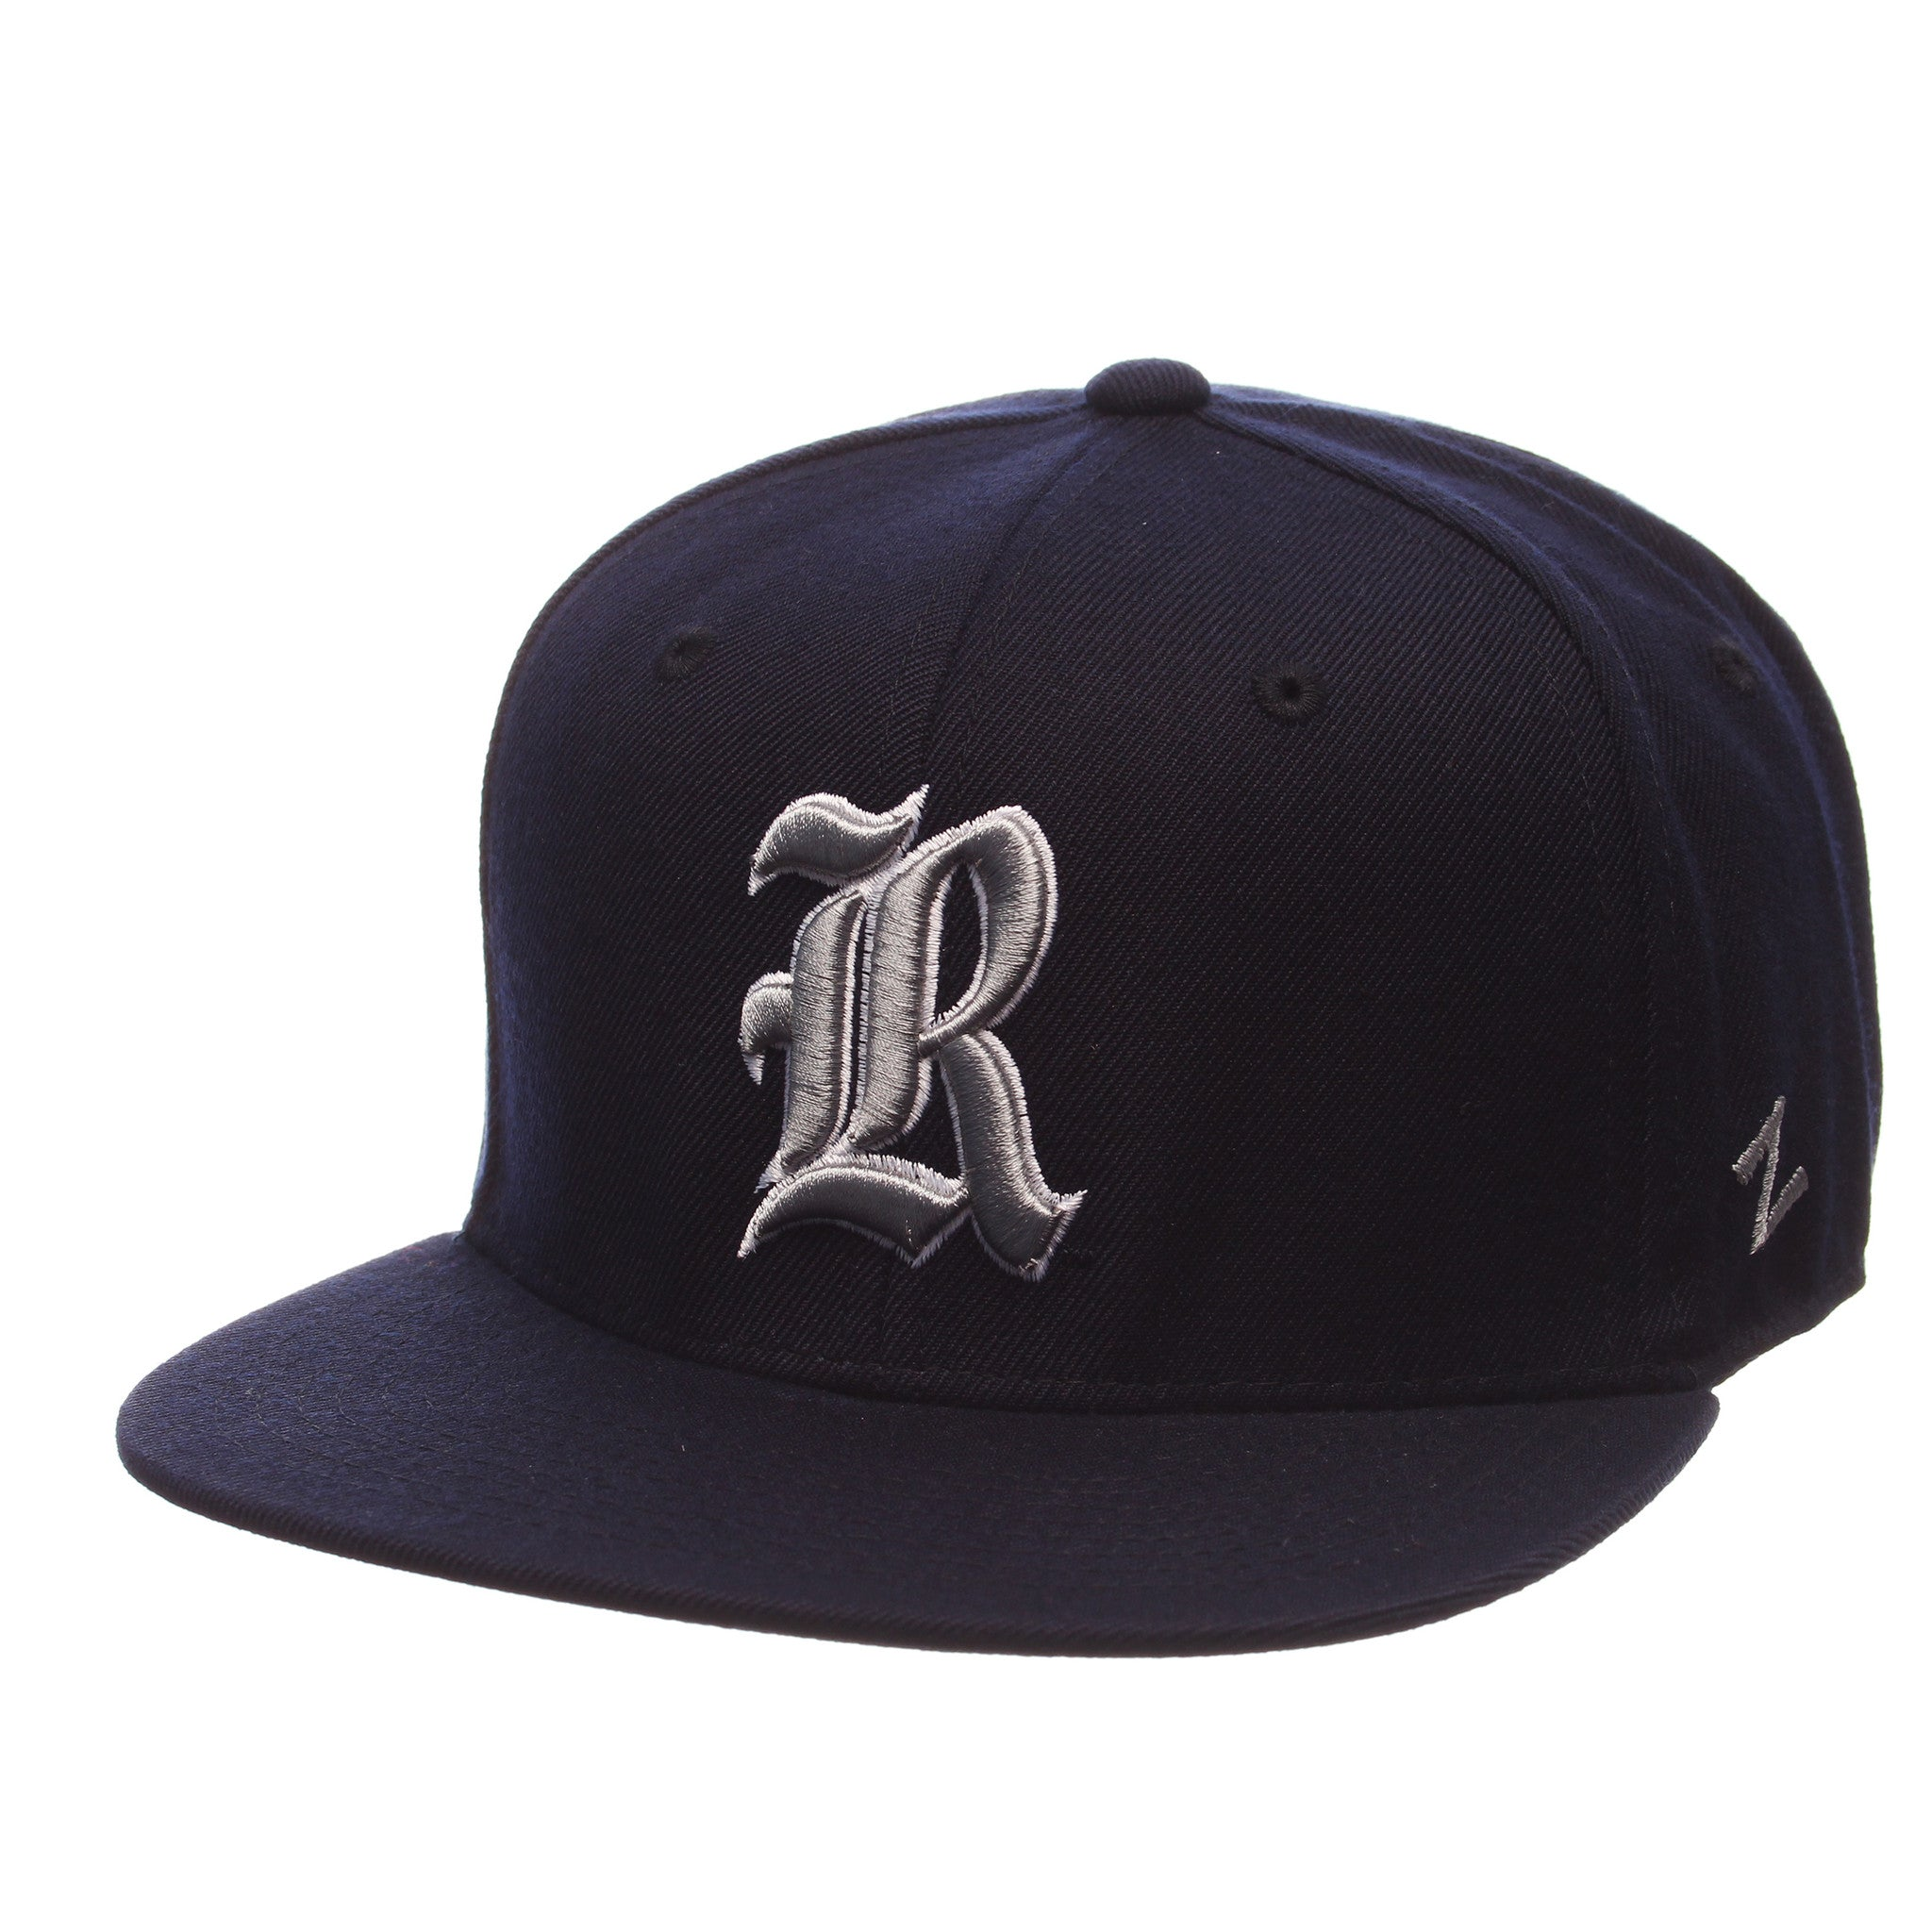 Rice University 93 32/5 (High) (R) Navy Dark Zwool Fitted hats by Zephyr